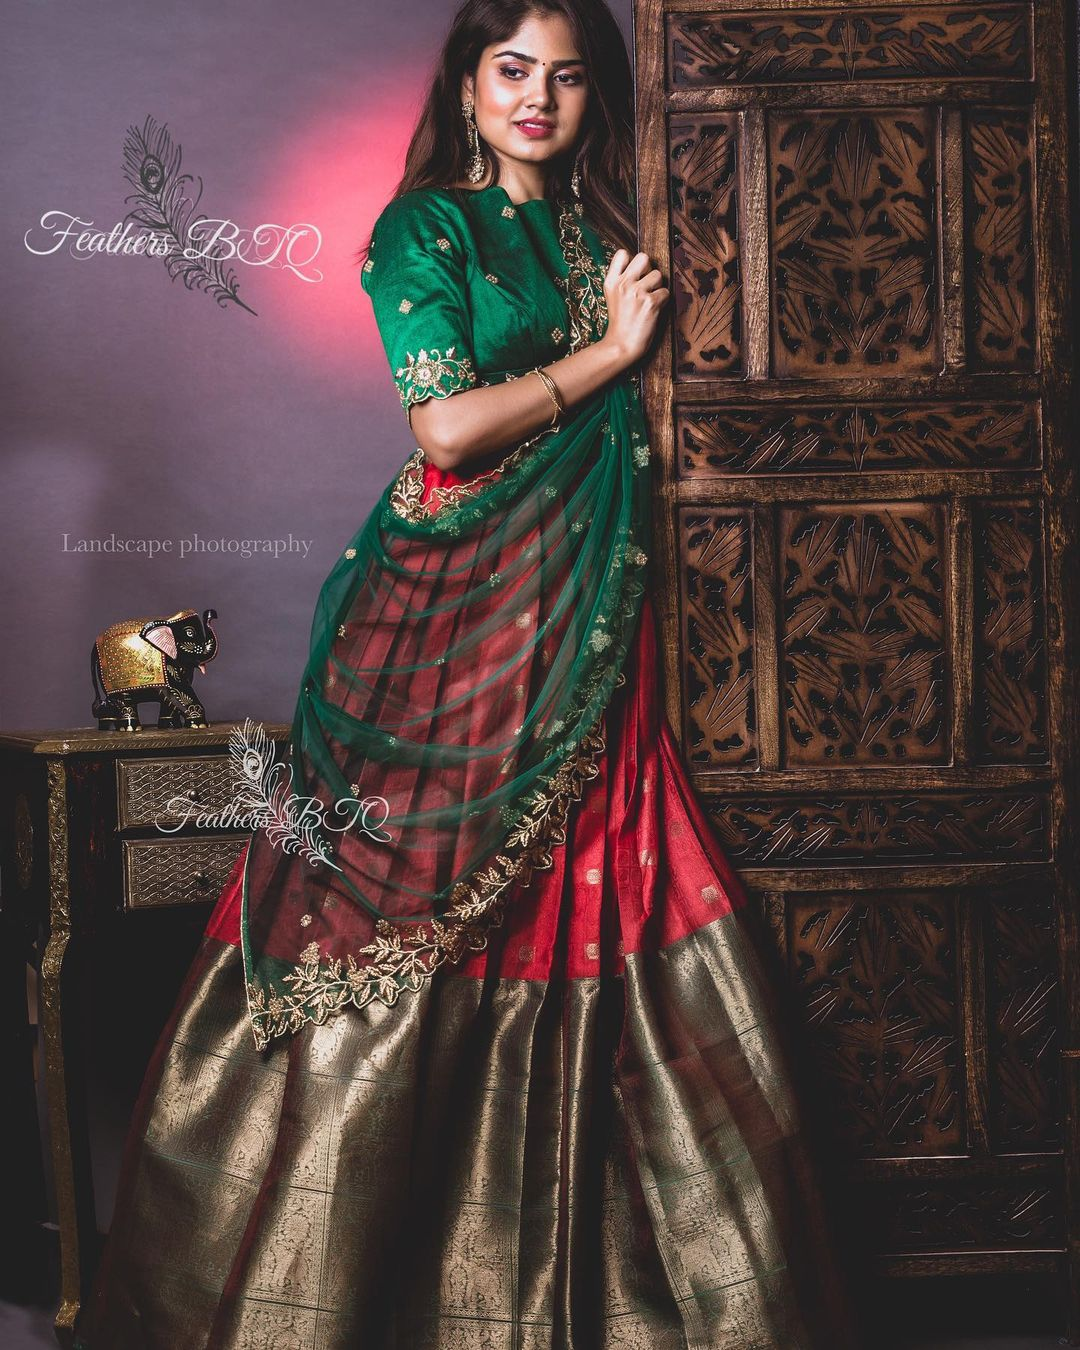 Stunning red and bottle green color combination pattu lehenga and high neck blouse with net dupatta. 2021-05-14